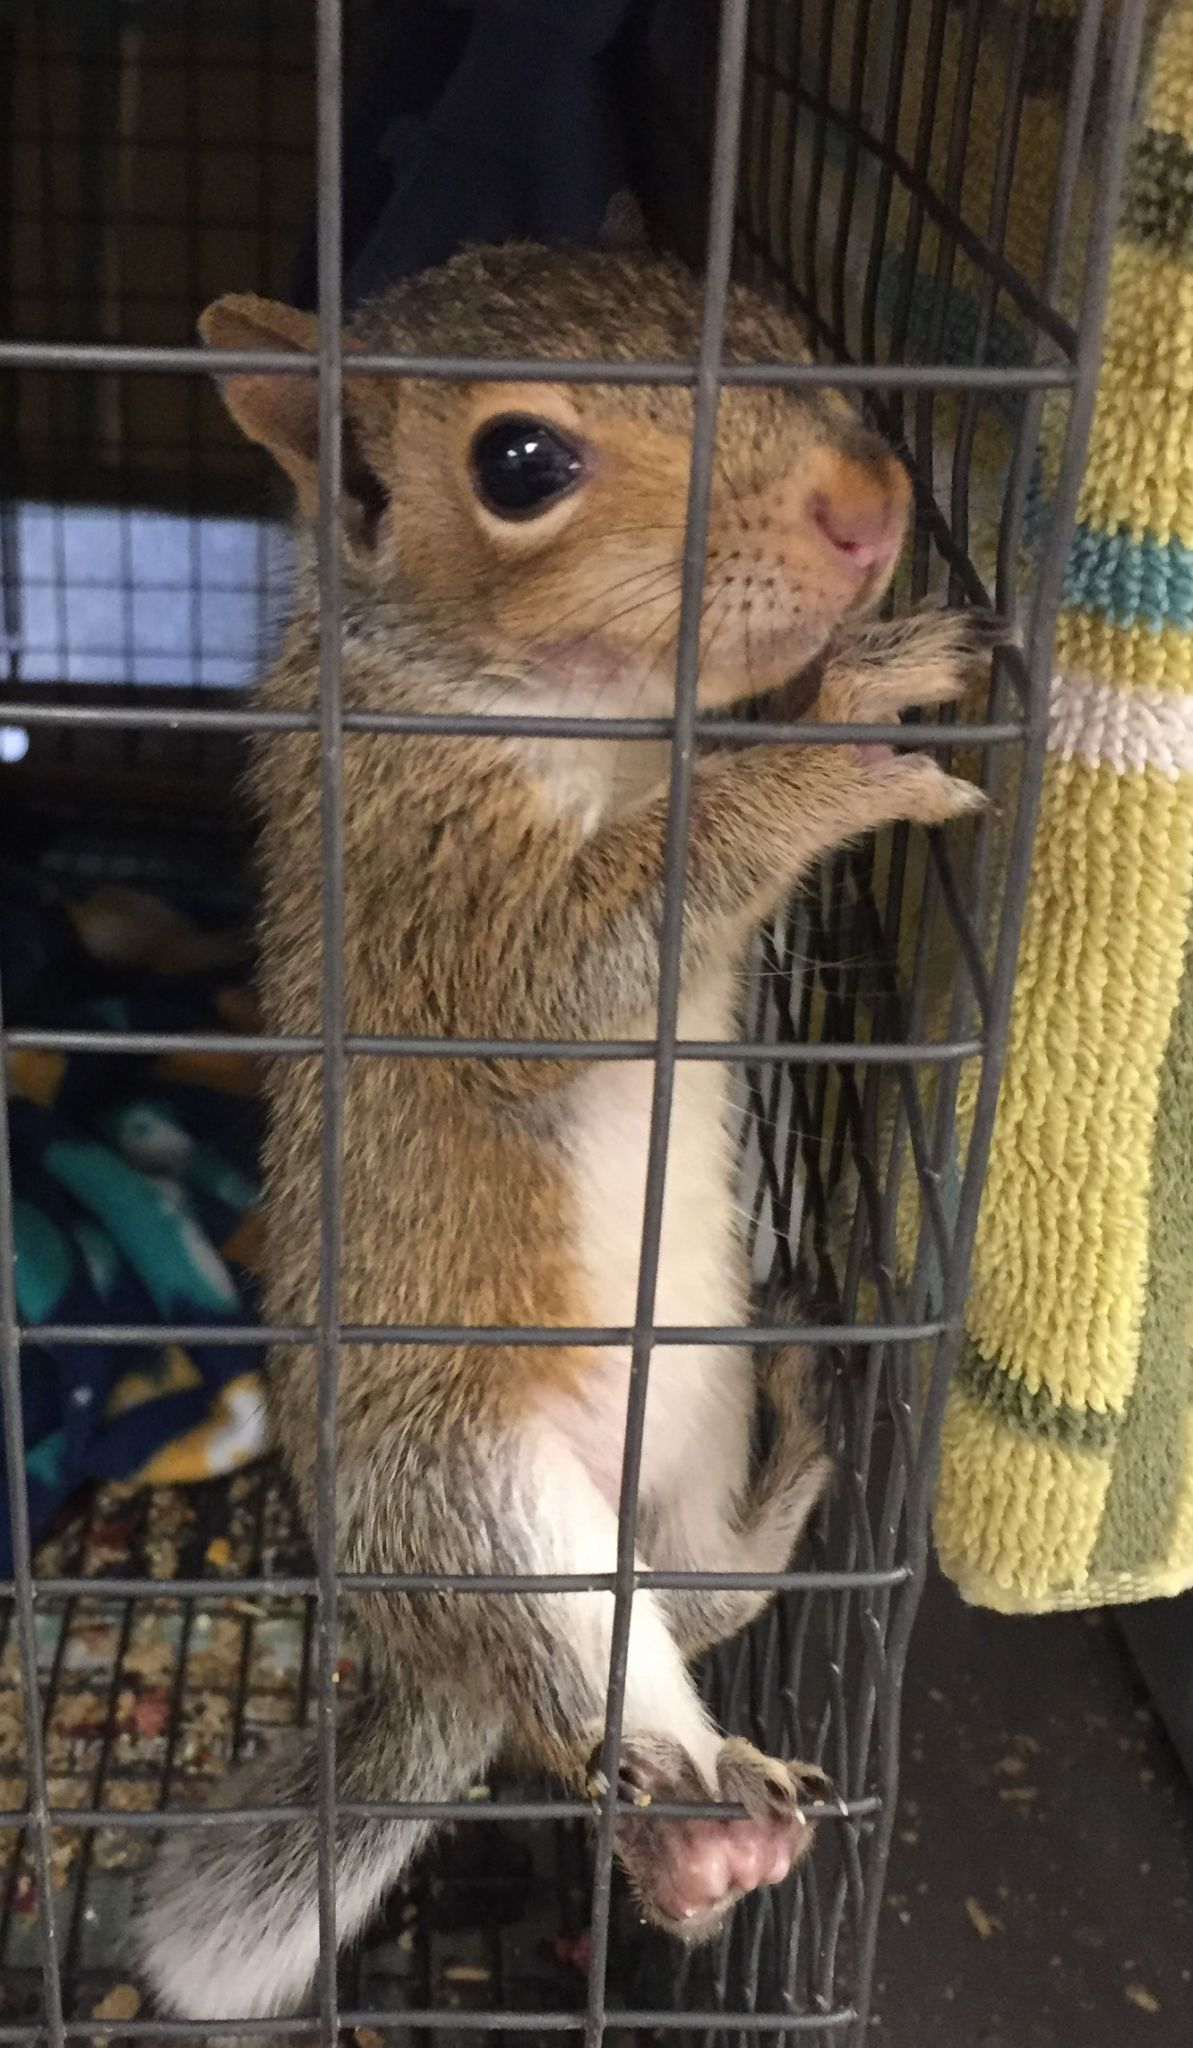 Nearly 100 Baby Squirrels Injured After Falling From Trees